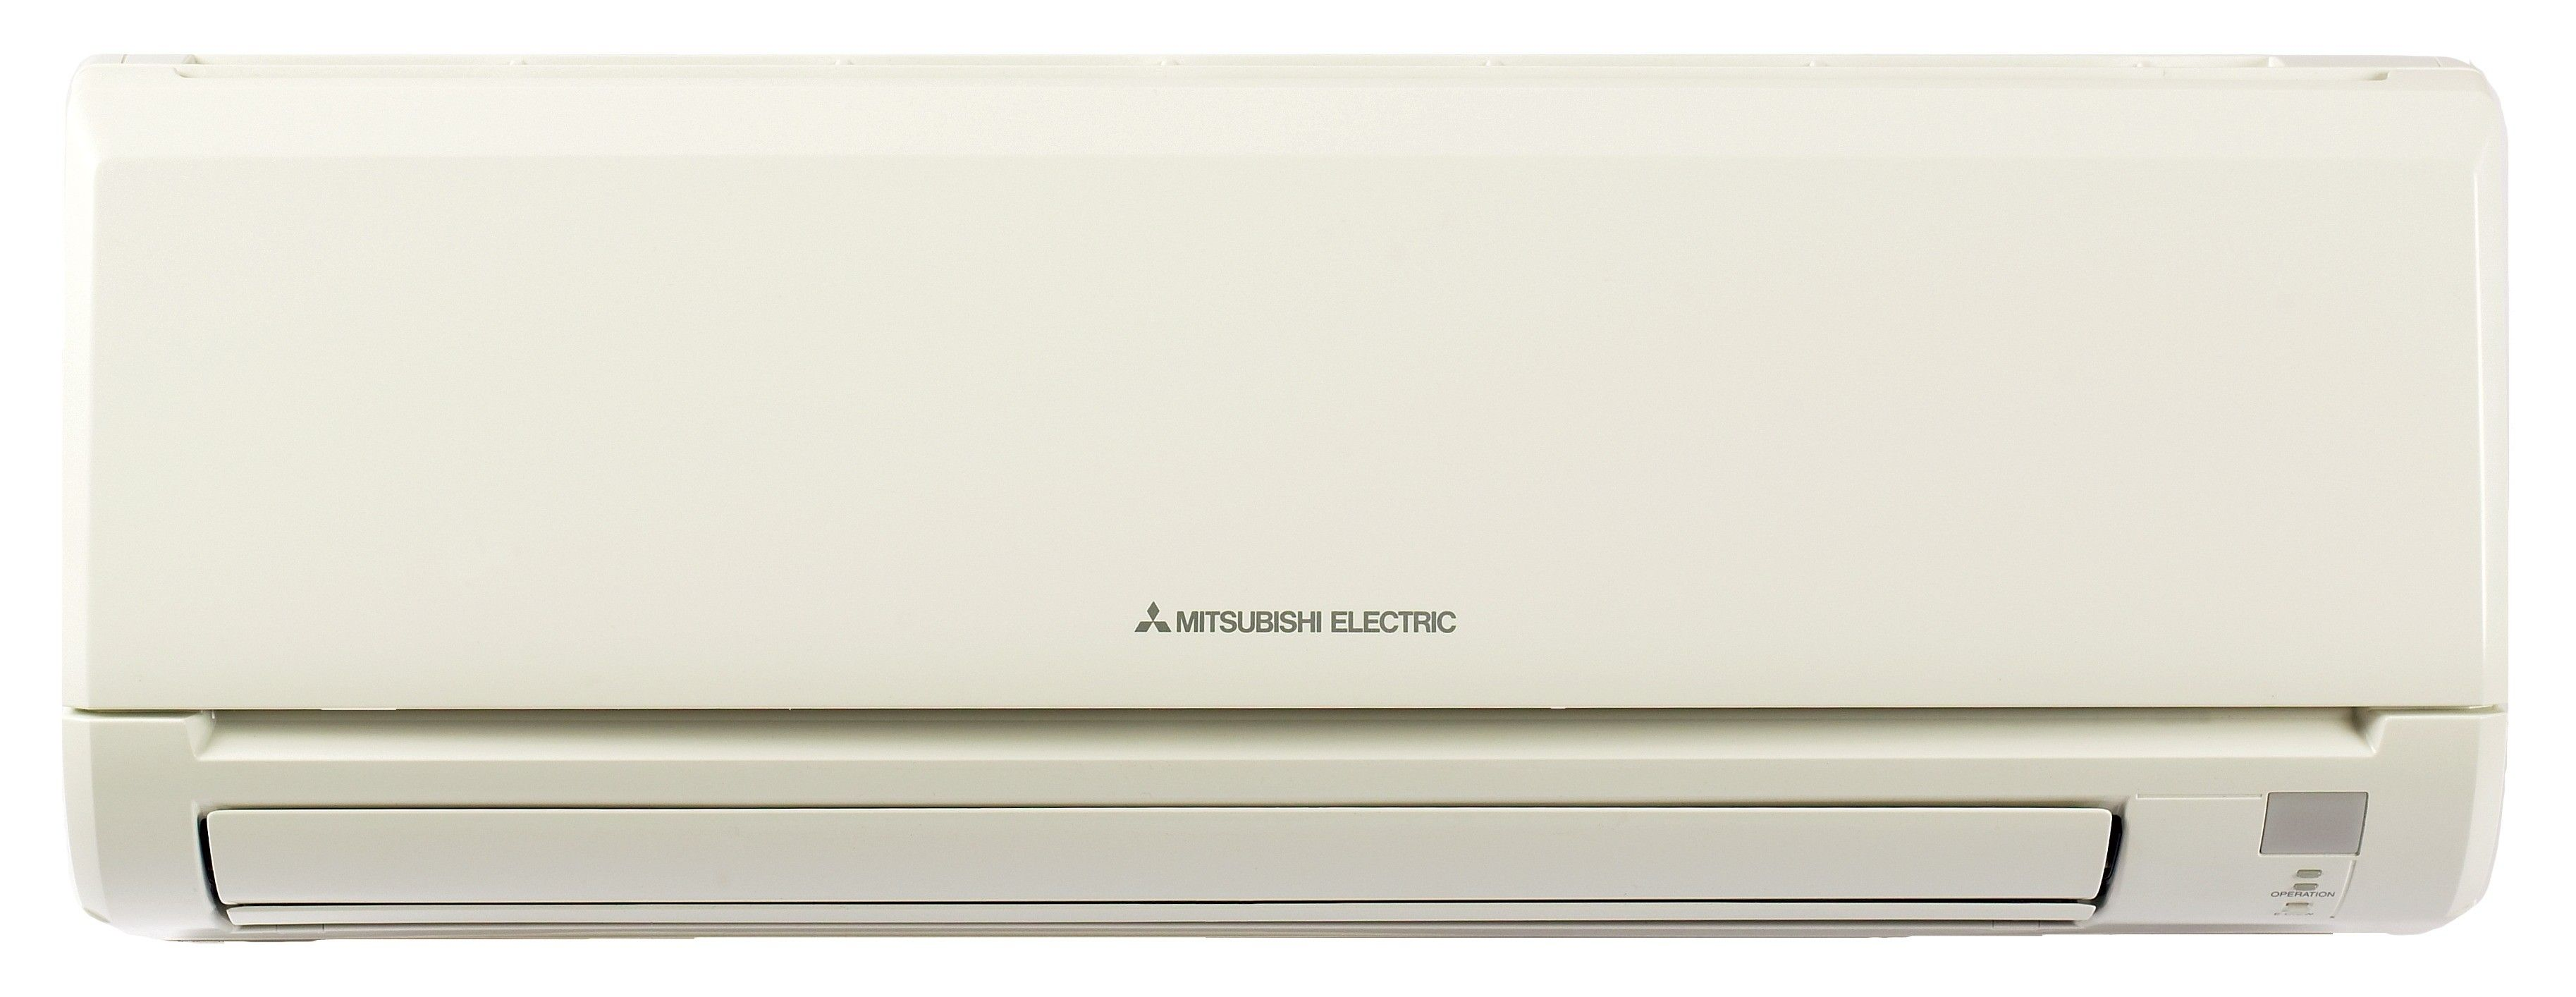 9K BTU MItsubishi MSZGL Wall-Mounted Heat Pump Indoor Unit